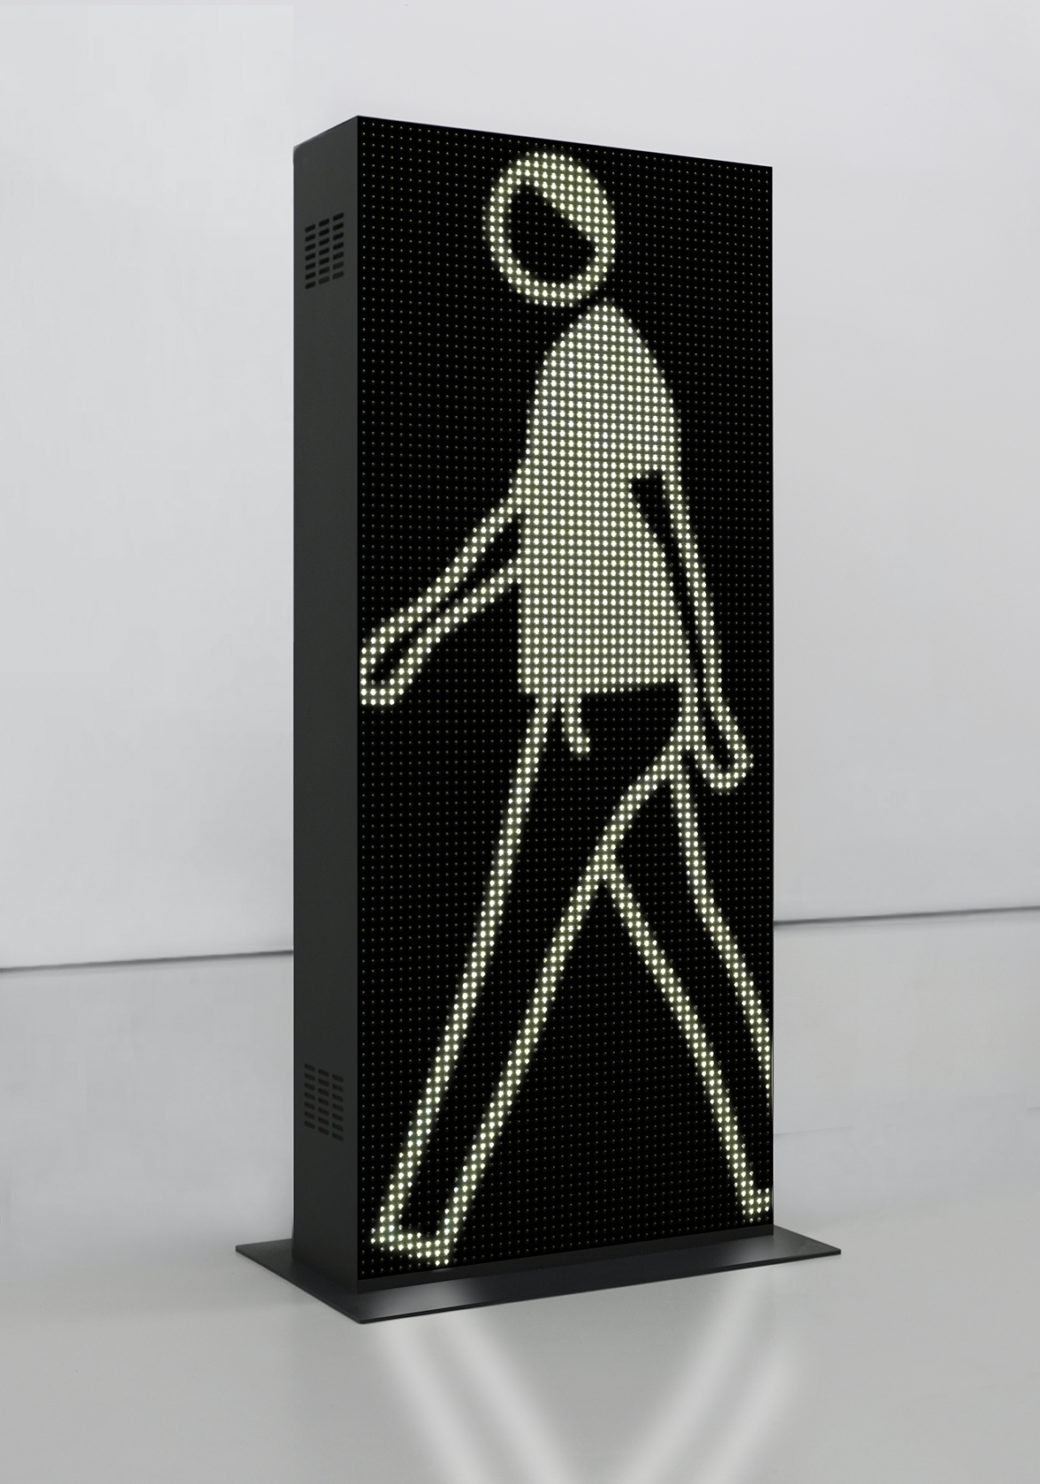 Large LED display of a figure in white walking